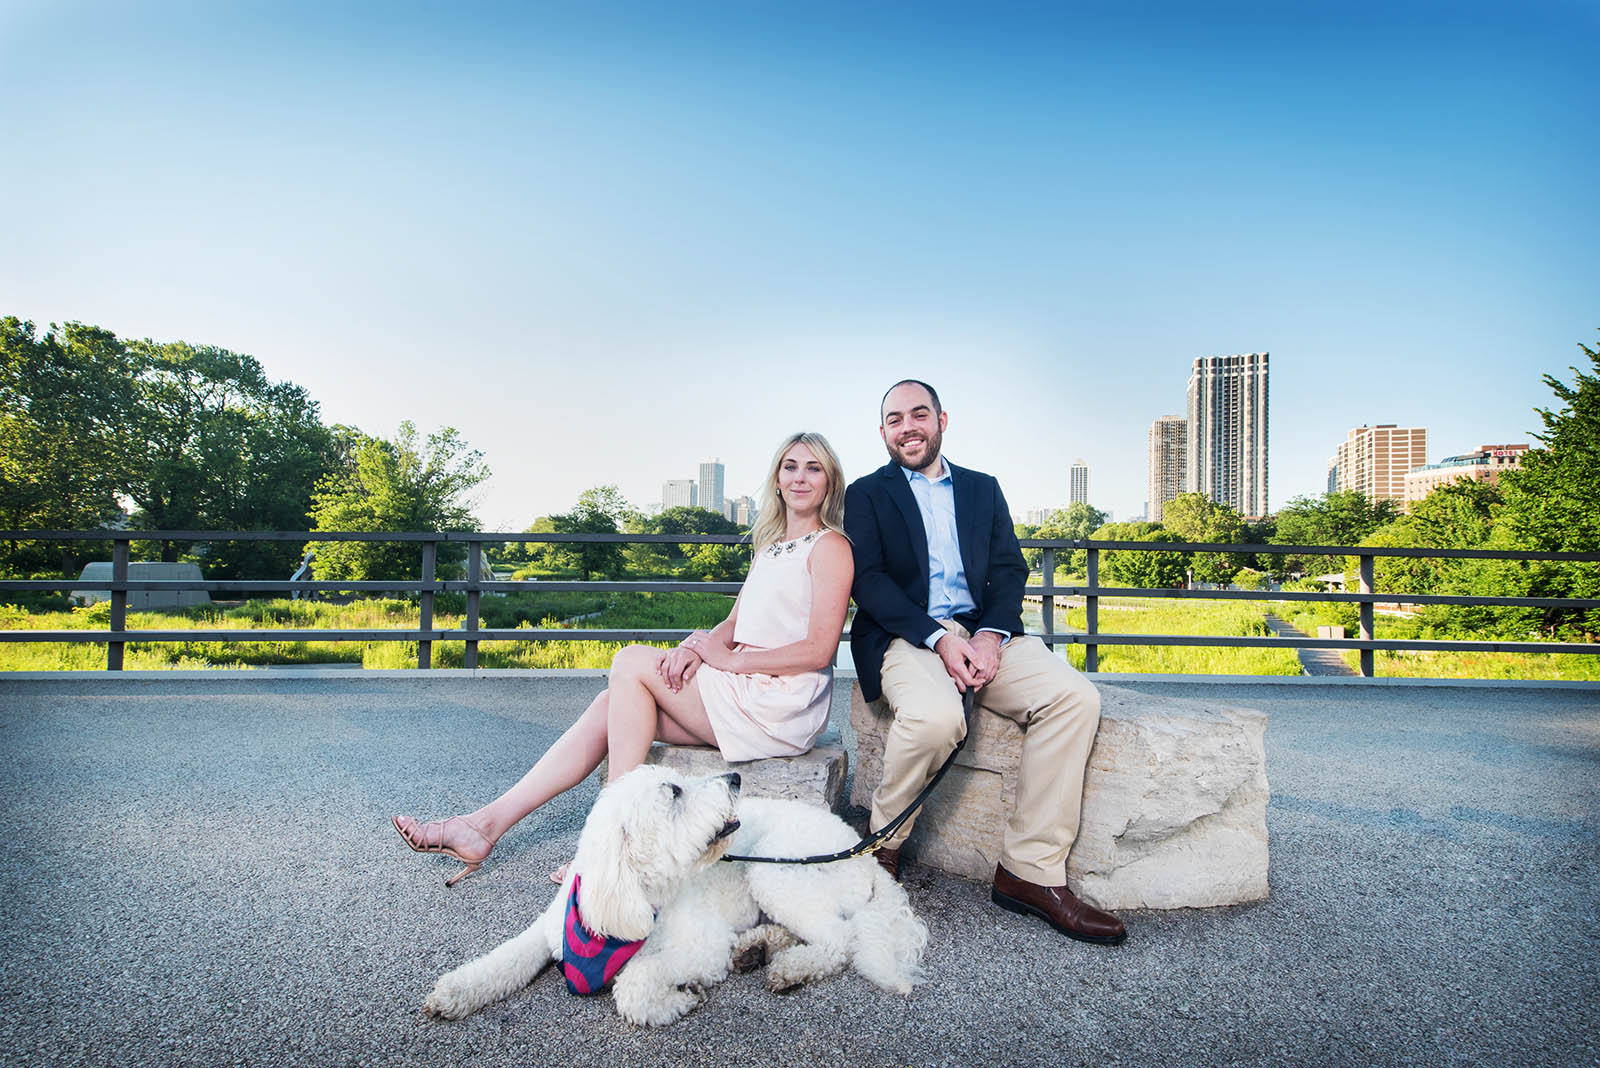 Lincoln Park Zoo Chicago Skyline Engagement Photography